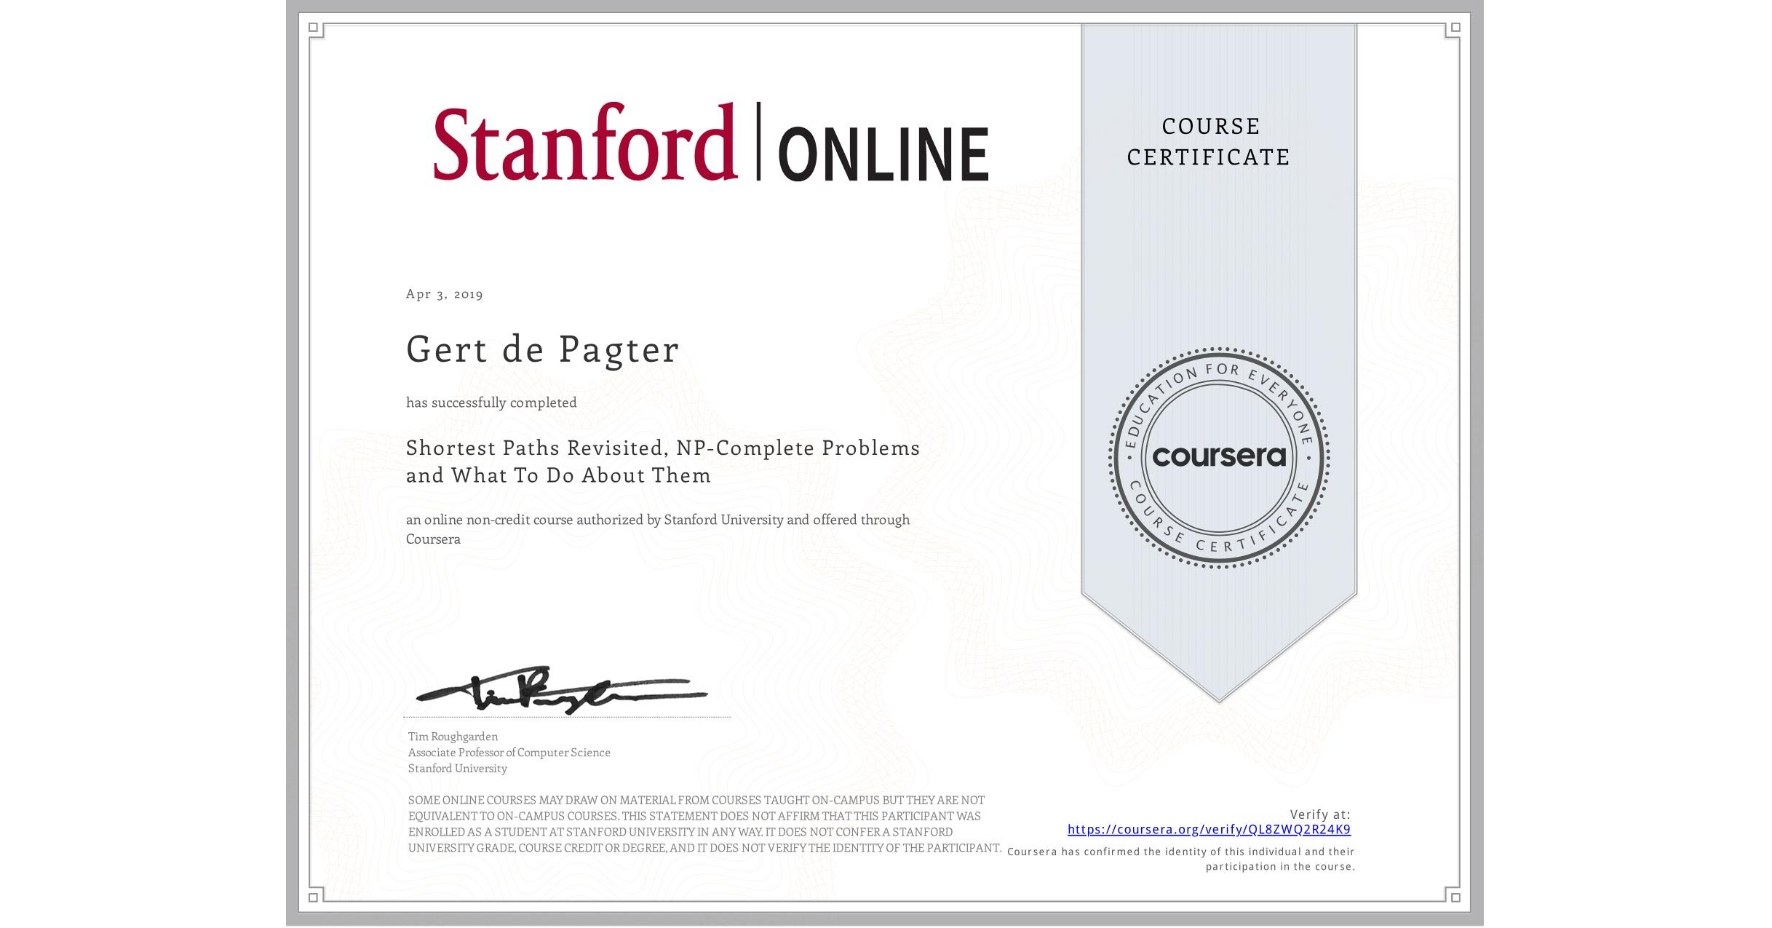 View certificate for Gert de Pagter, Shortest Paths Revisited, NP-Complete Problems and What To Do About Them, an online non-credit course authorized by Stanford University and offered through Coursera